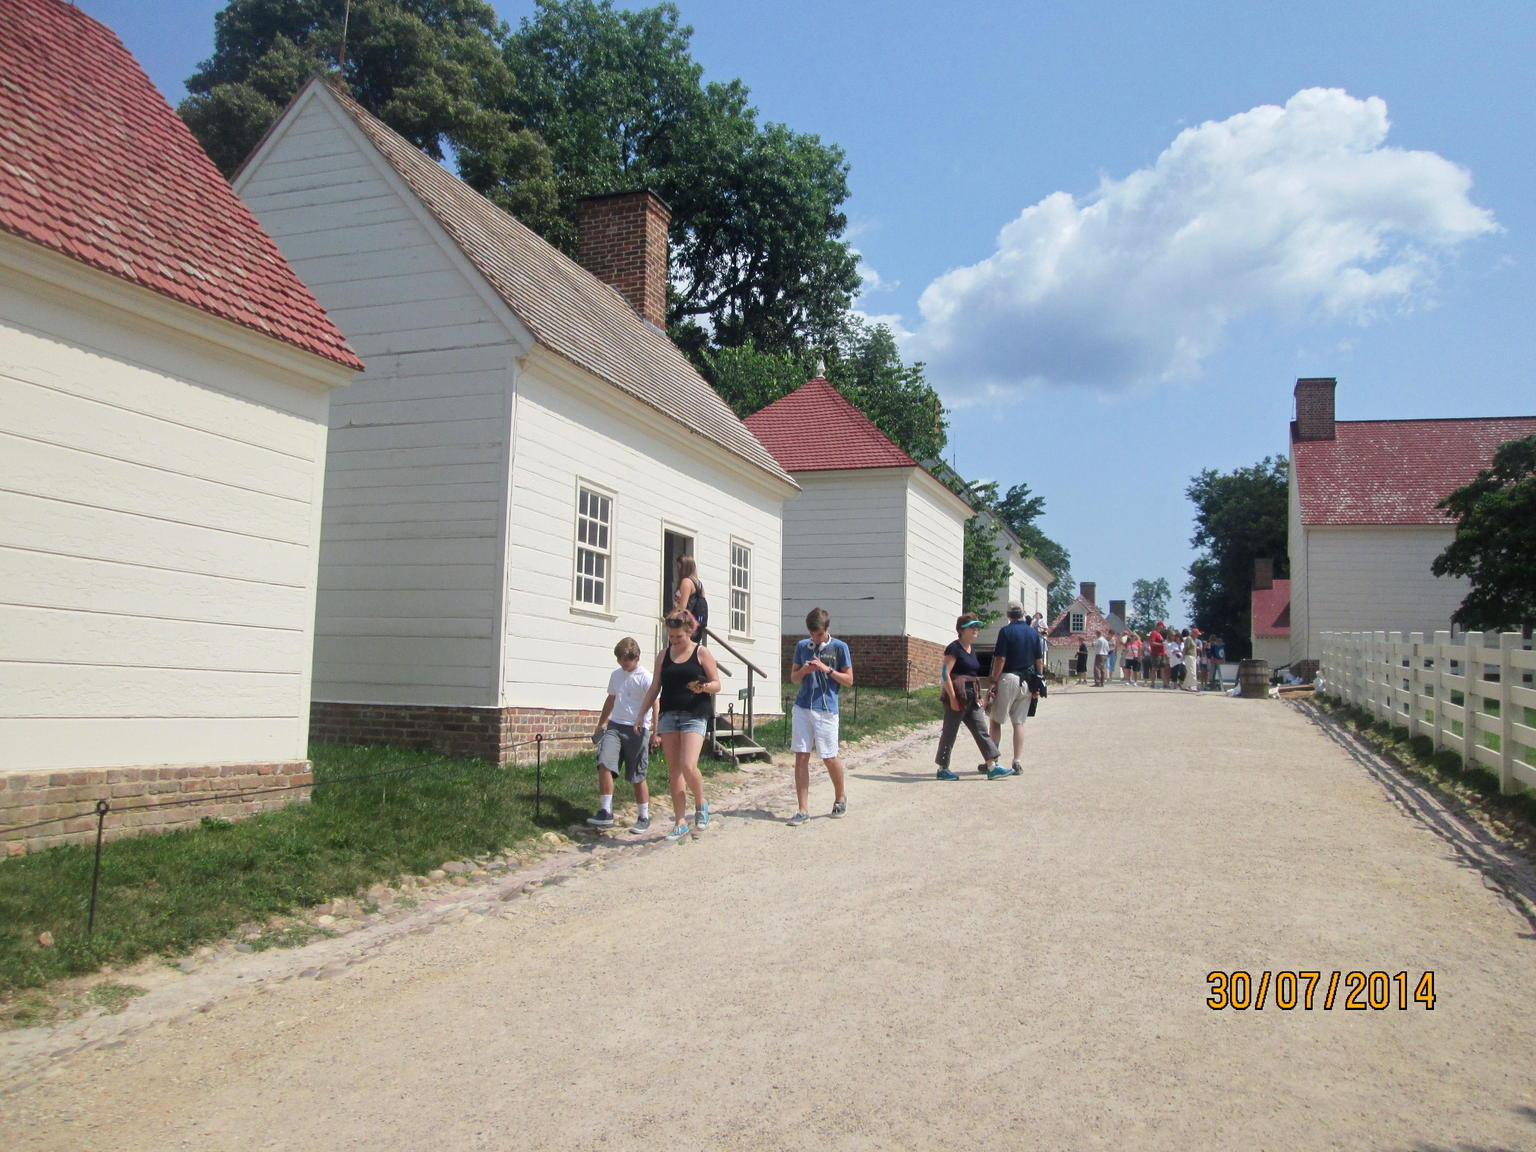 Mount Vernon outbuildings